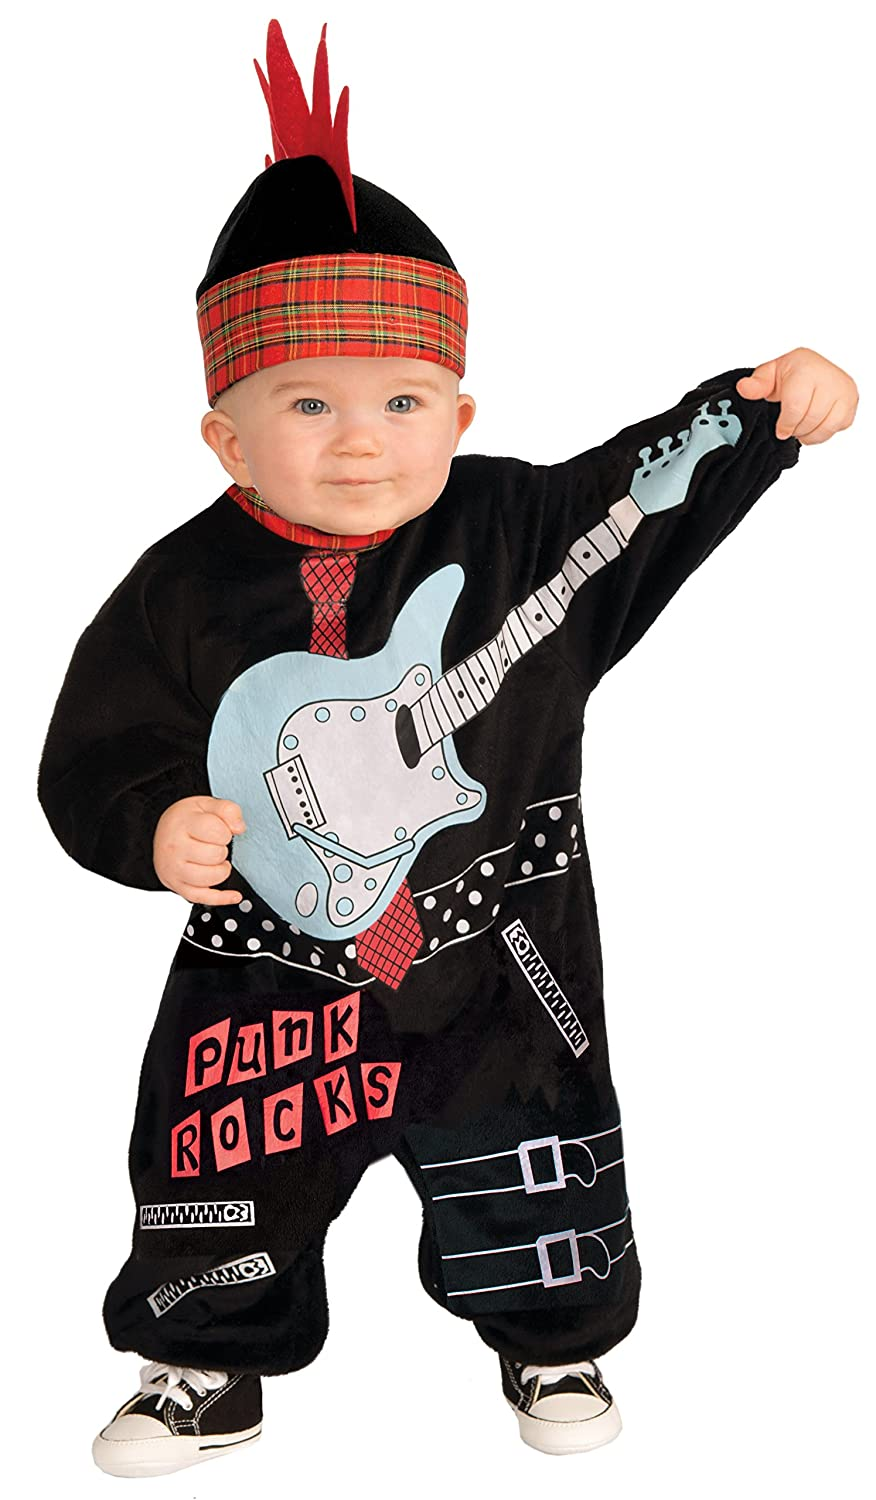 Amazon.com Forum Novelties Baby Boyu0027s Lil Rock Star Punk Baby Boy Costume Multi Infant Clothing  sc 1 st  Amazon.com & Amazon.com: Forum Novelties Baby Boyu0027s Lil Rock Star Punk Baby Boy ...